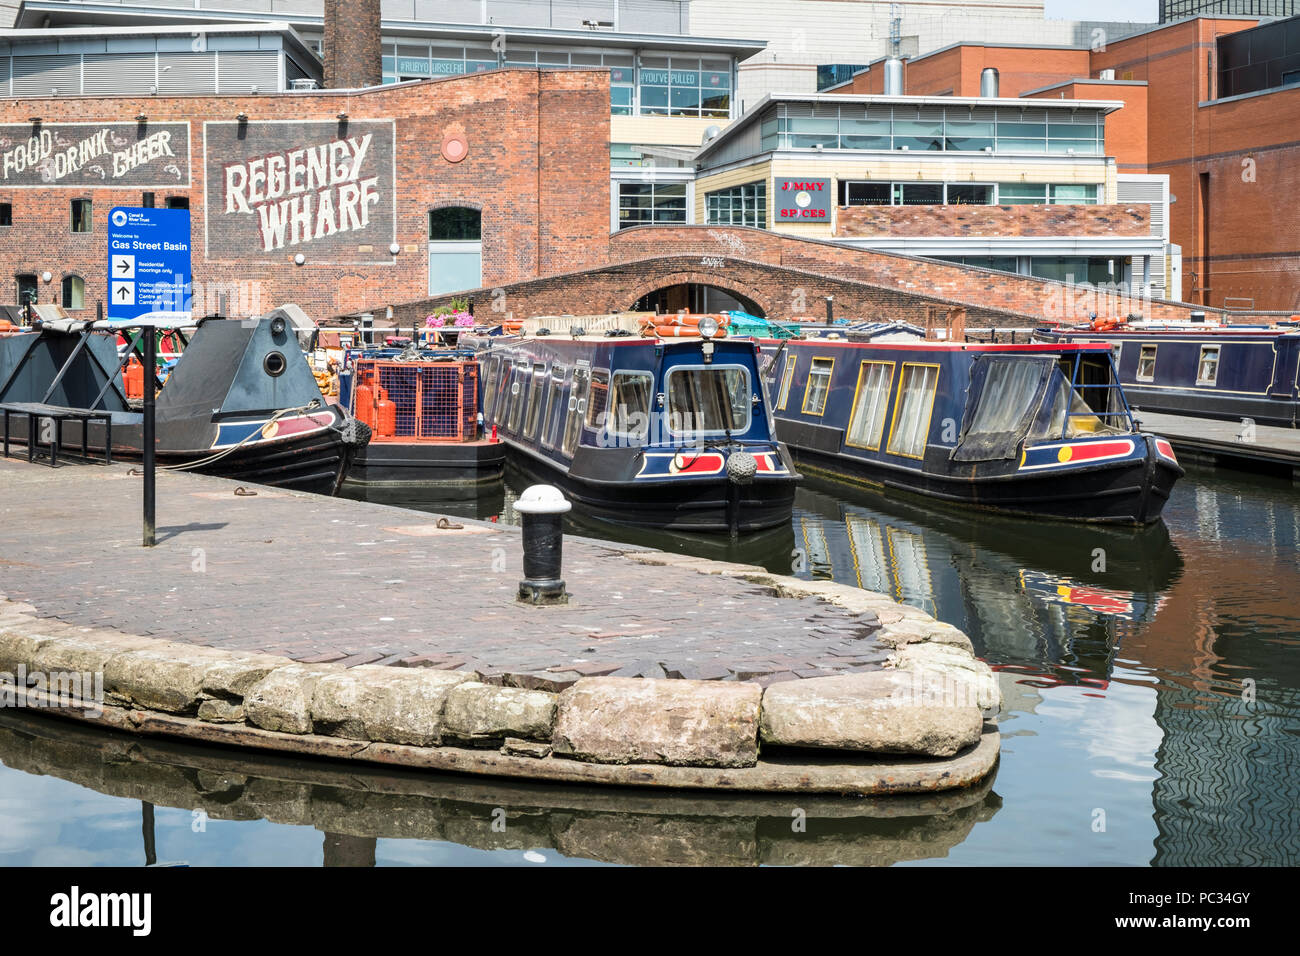 Moored narrowboats at Regency Wharf, Gas Street Basin in Birmingham city centre, England, UK. - Stock Image